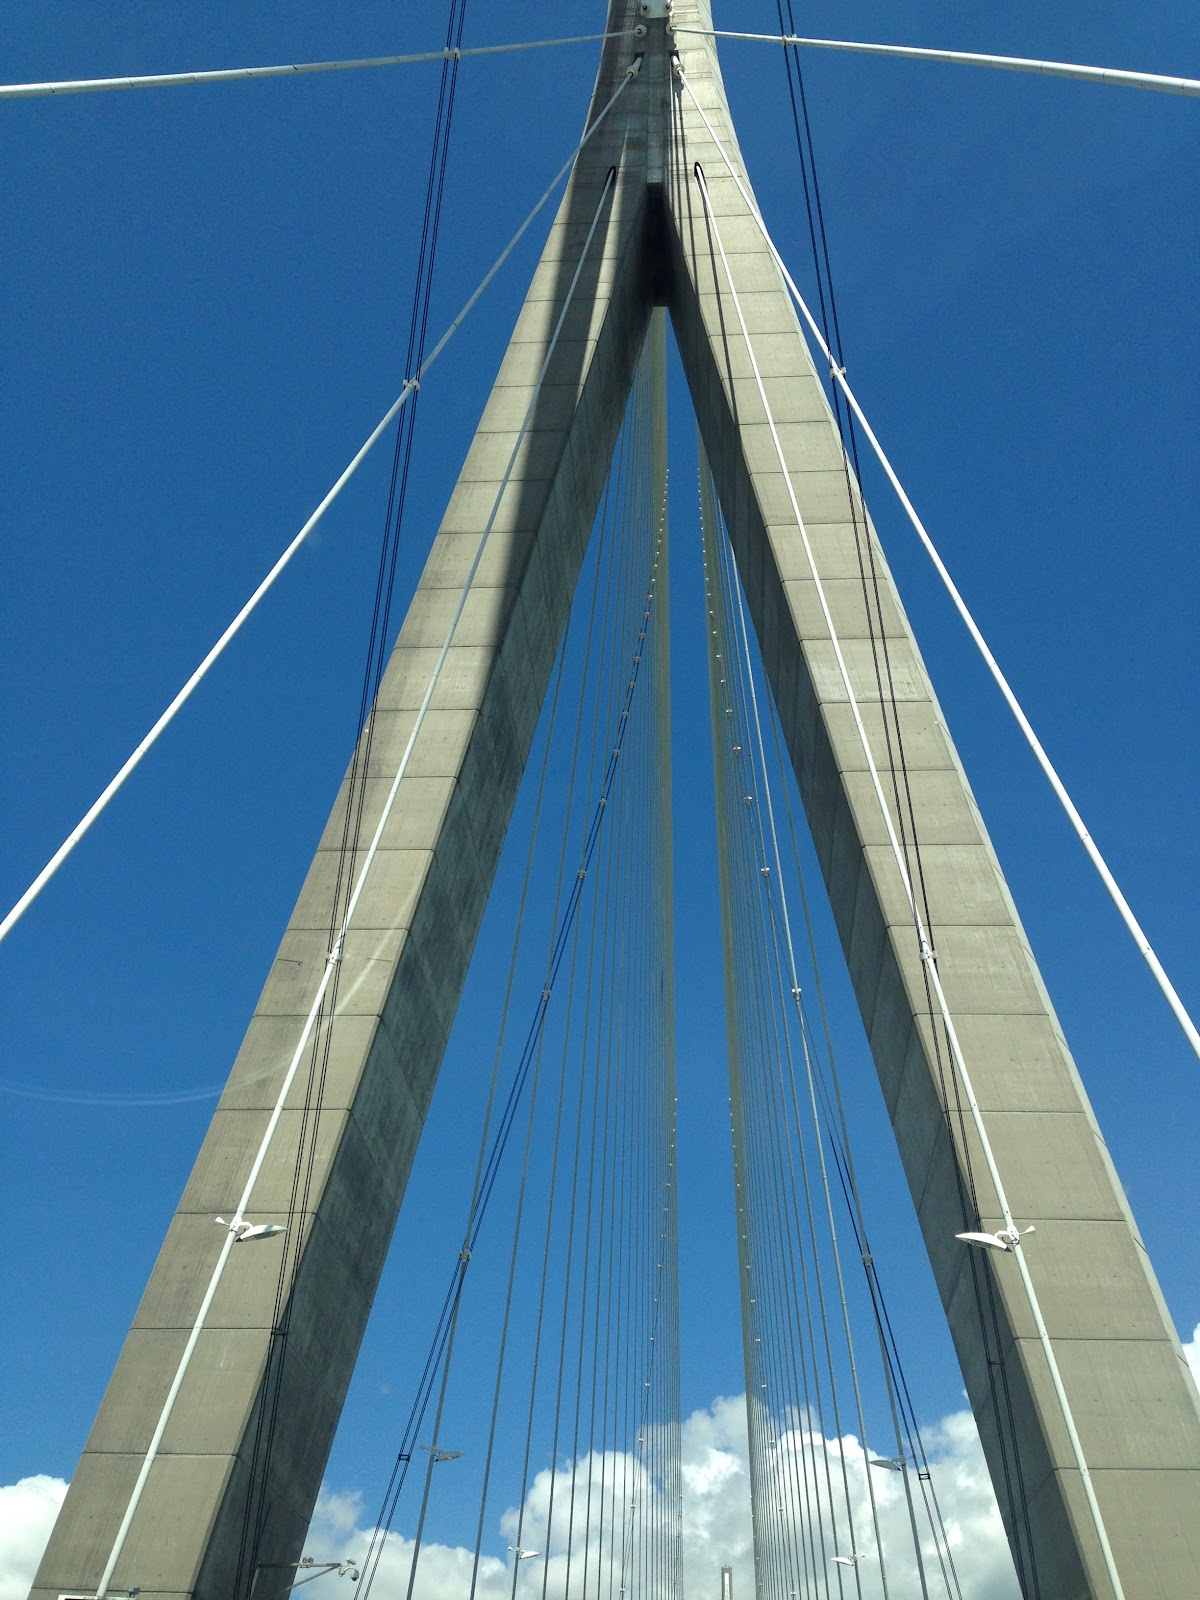 pont de normandie modern bridge, detail closeup photo of the bridge's rods and support elements on a clear day in france.